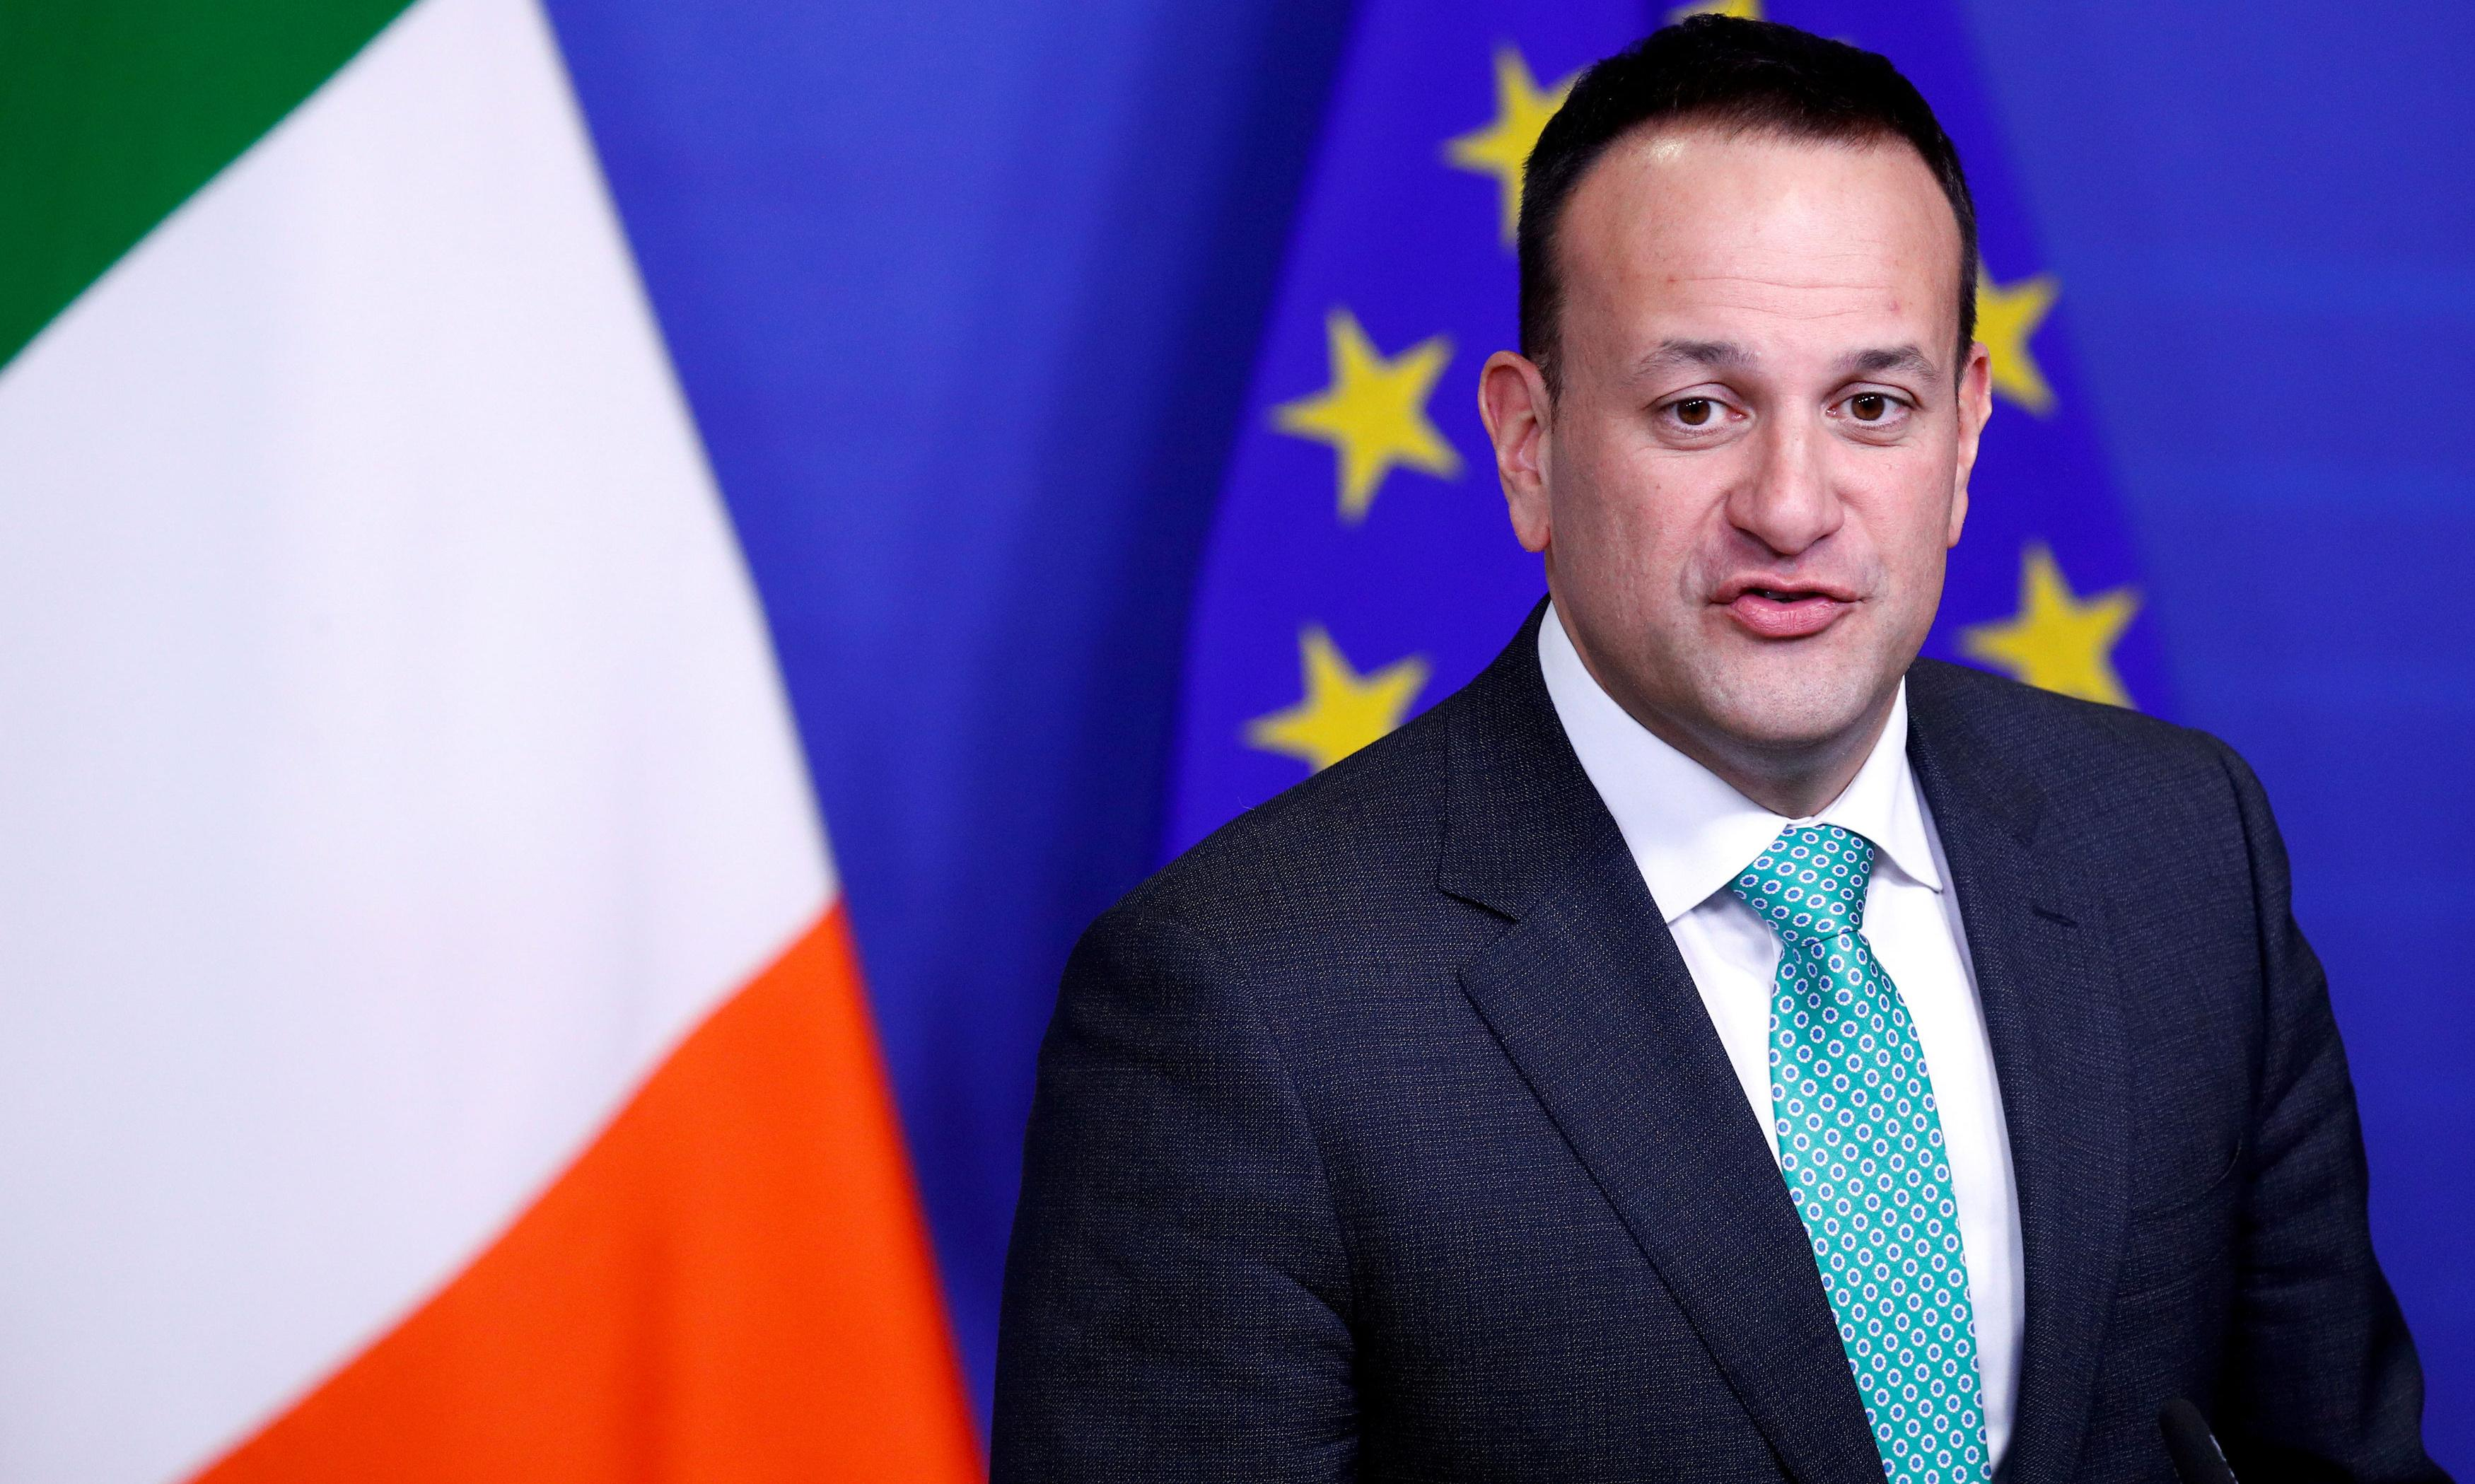 Ireland steps up effort to shelter economy from no-deal Brexit